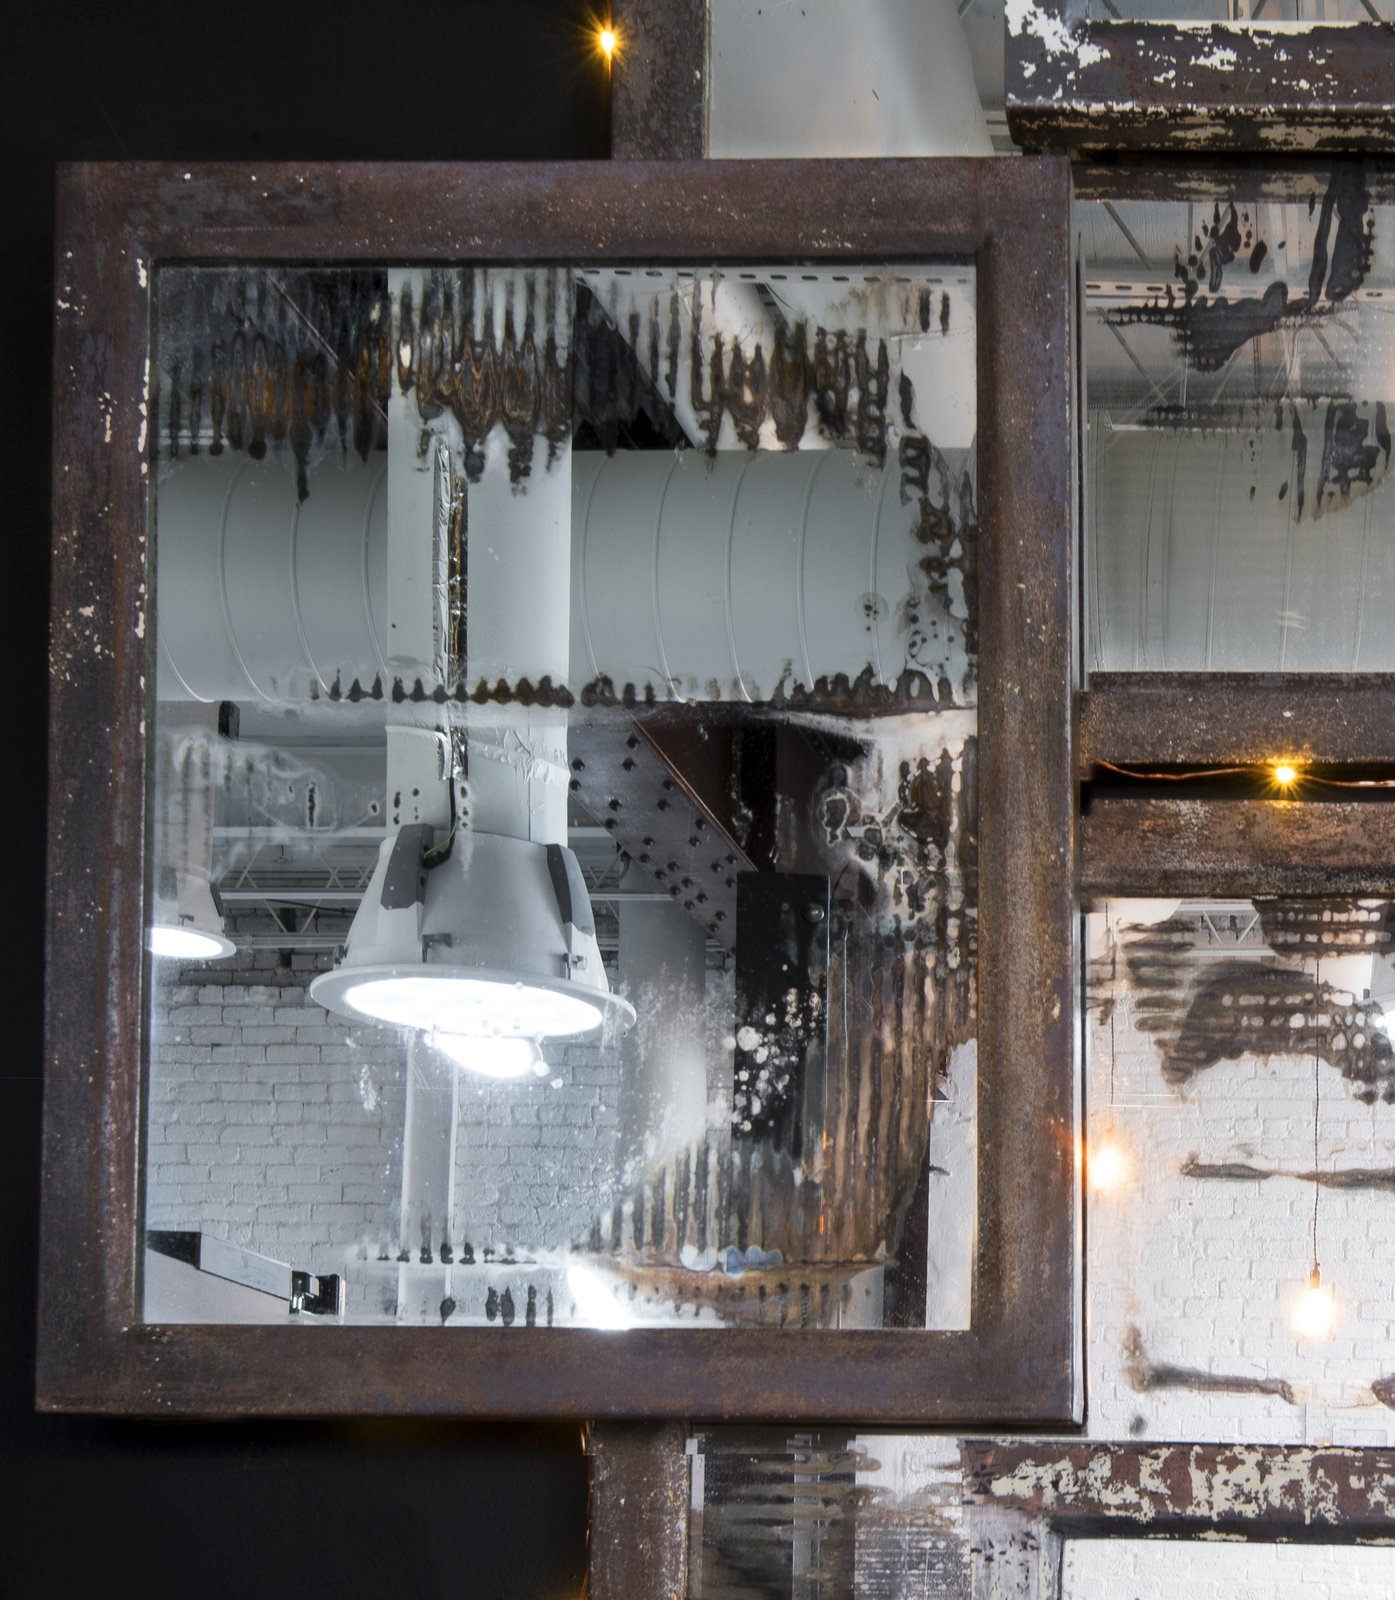 Detail of vintage mercury mirror installation made from medicine chests collected from historic Birmingham Hotel renovation.  Made by the Funktion Art Design Compound, a local collective that up-cycles and re-imagines architectural accents.  Studio GoodLight by Liesa Cole